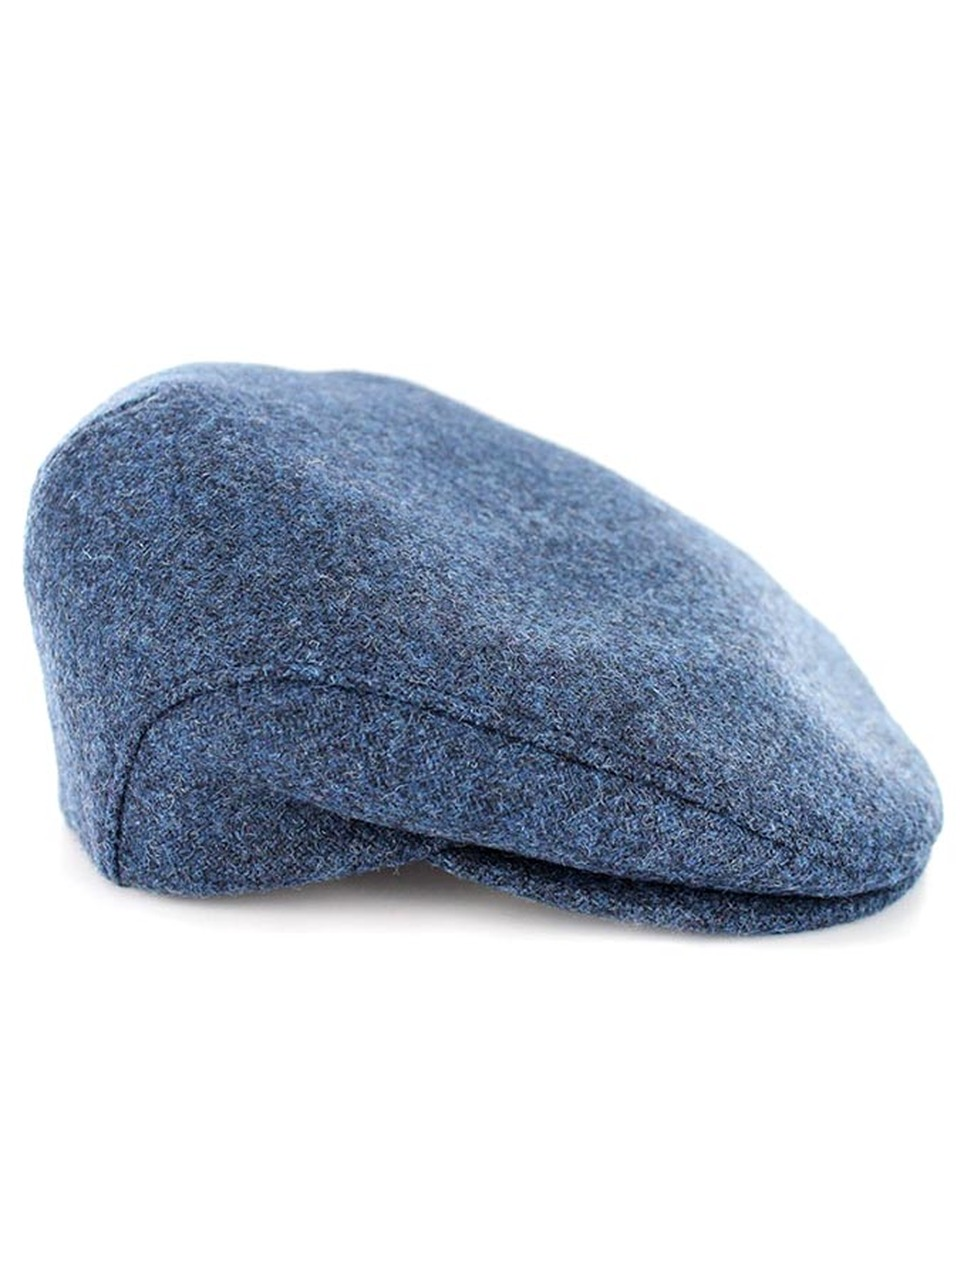 Trinity Tweed Flat Cap - Blue  2e7c419cd6f